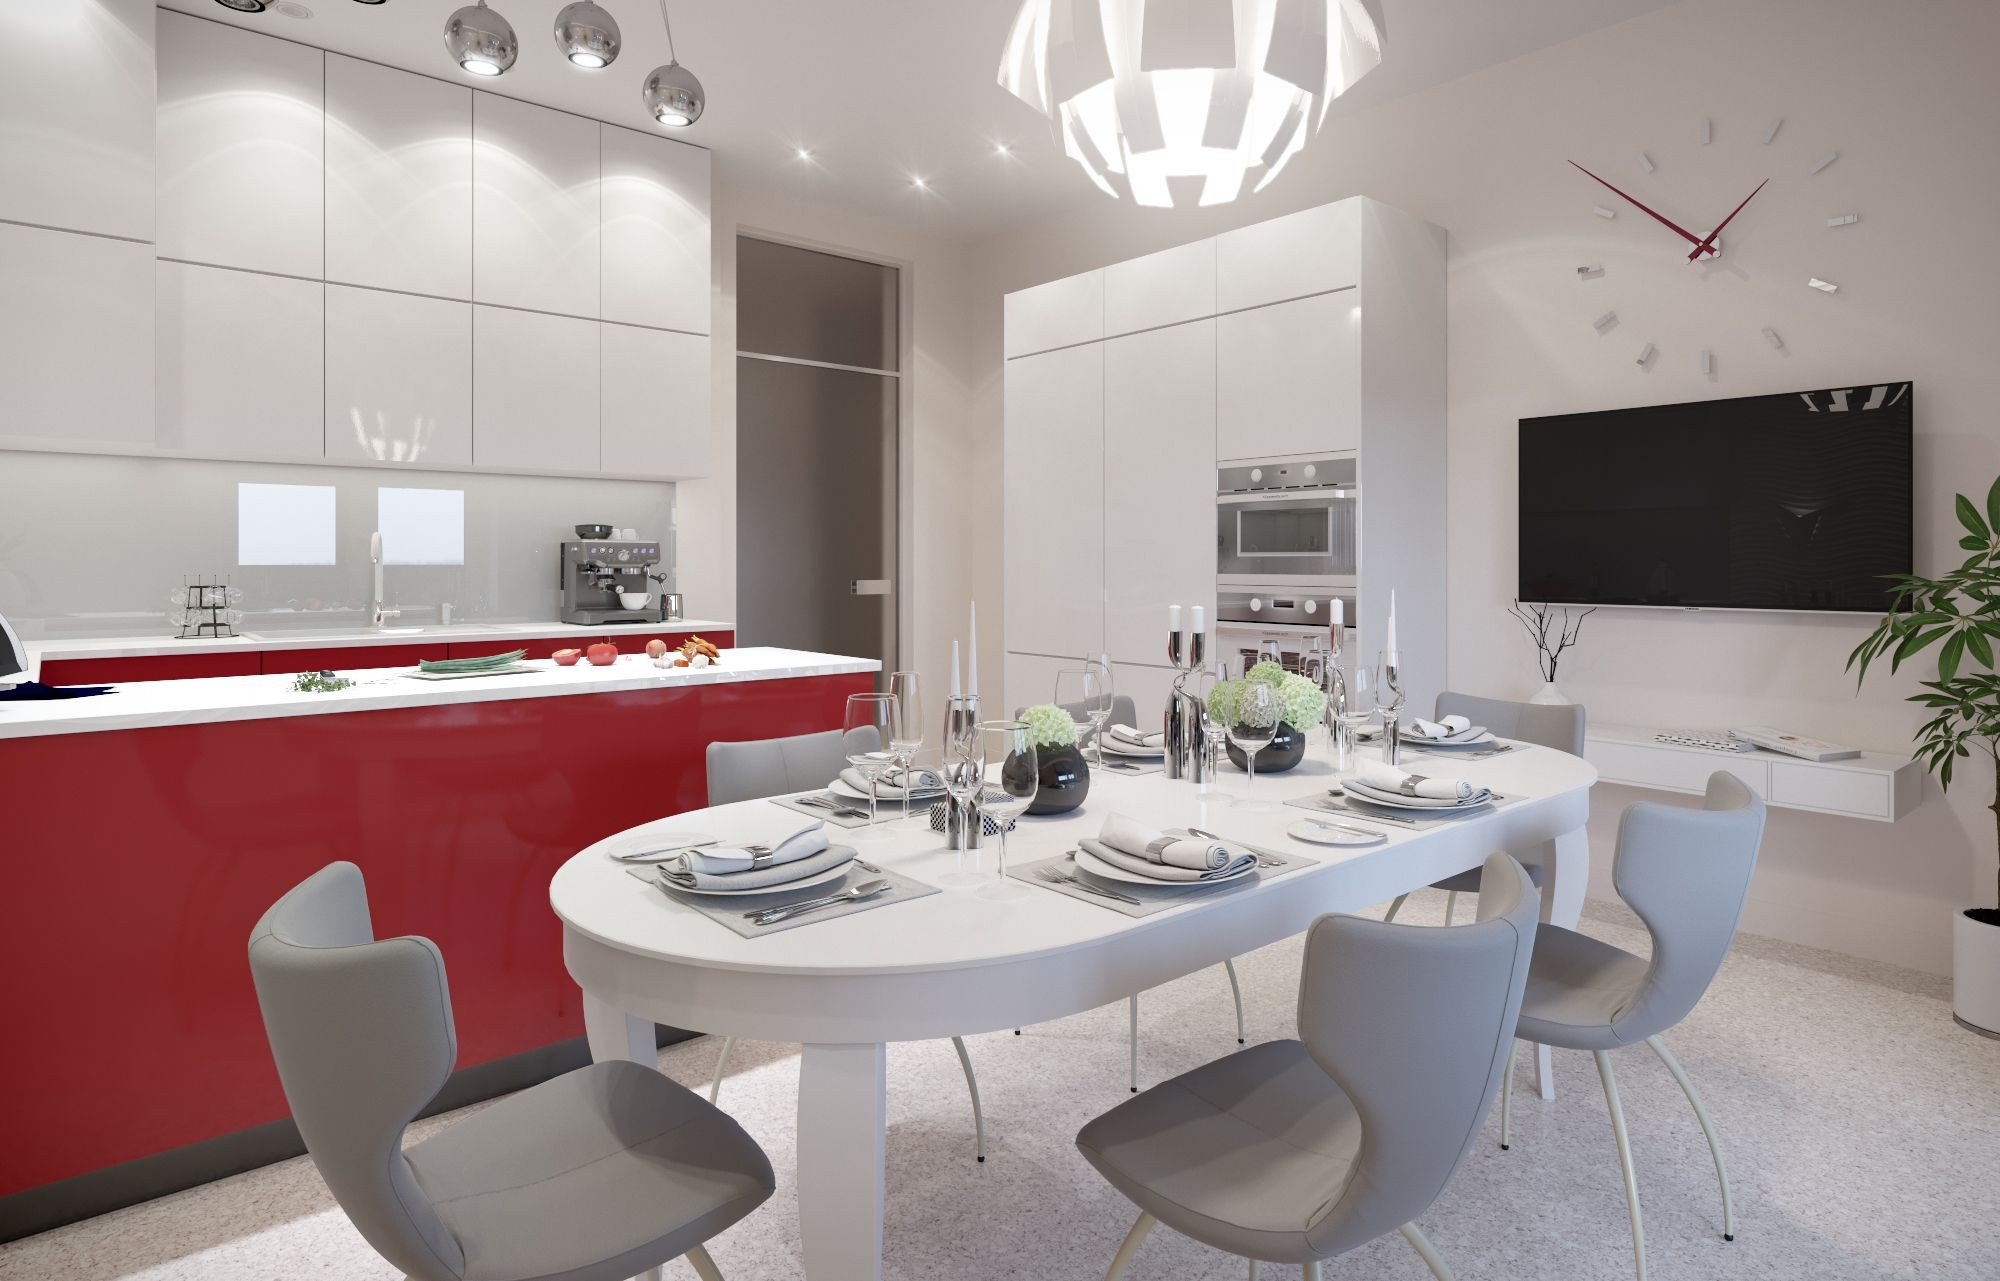 Interior design of modern kitchen with dining room using modern lamps mainly in white color